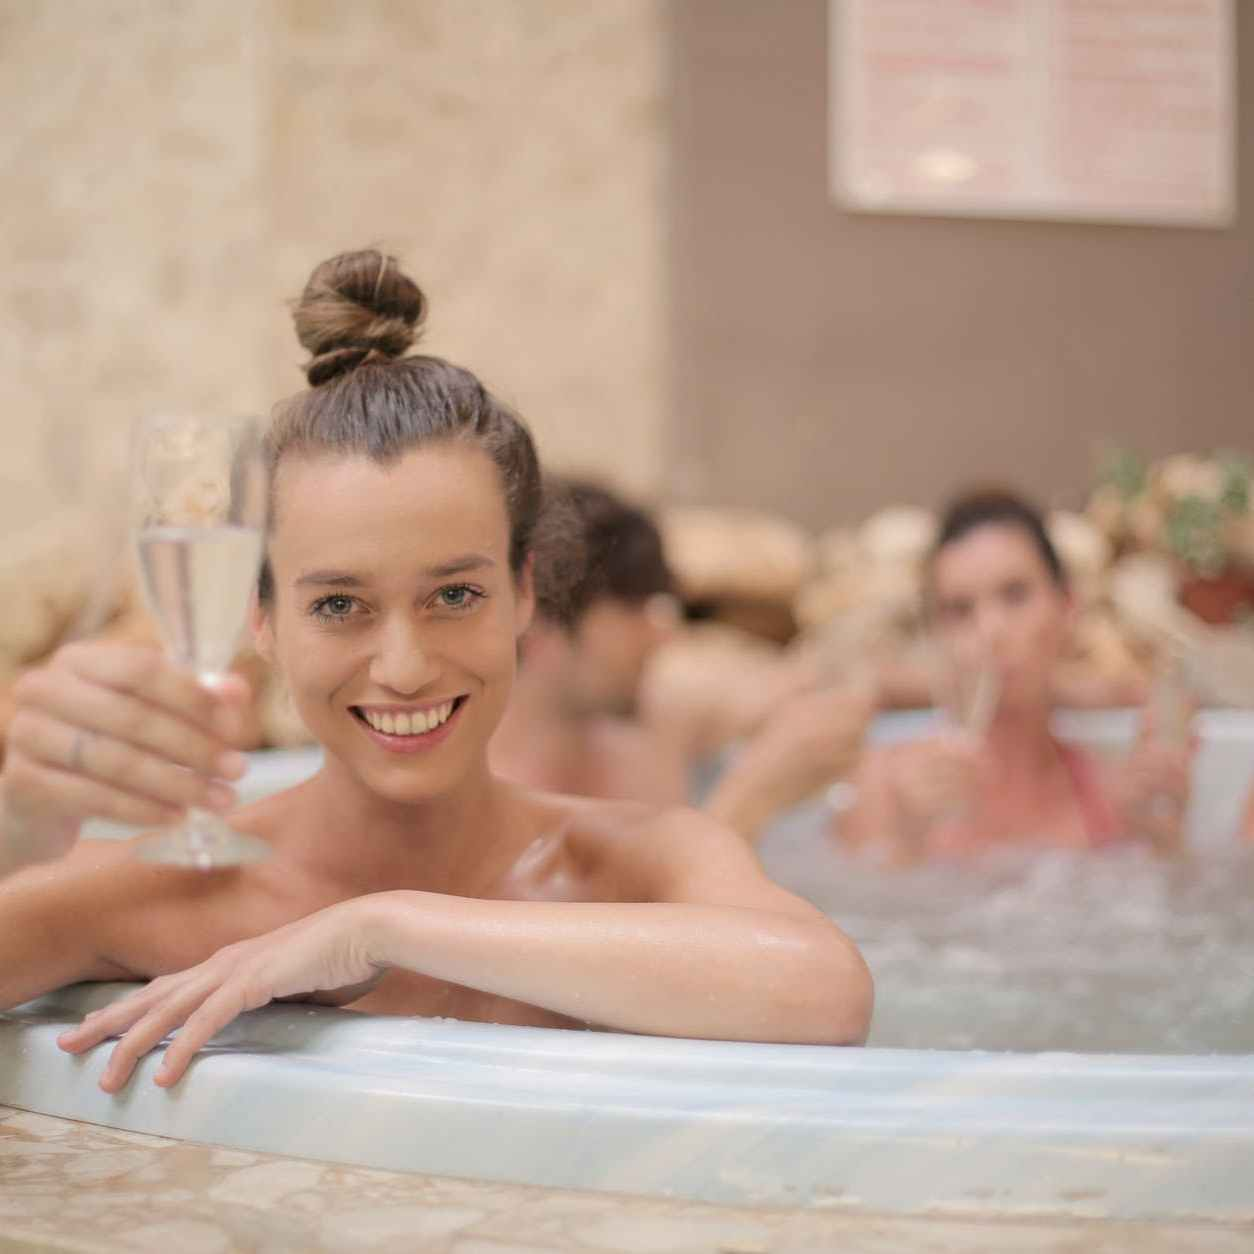 Woman in hottub with champagne glass on categories